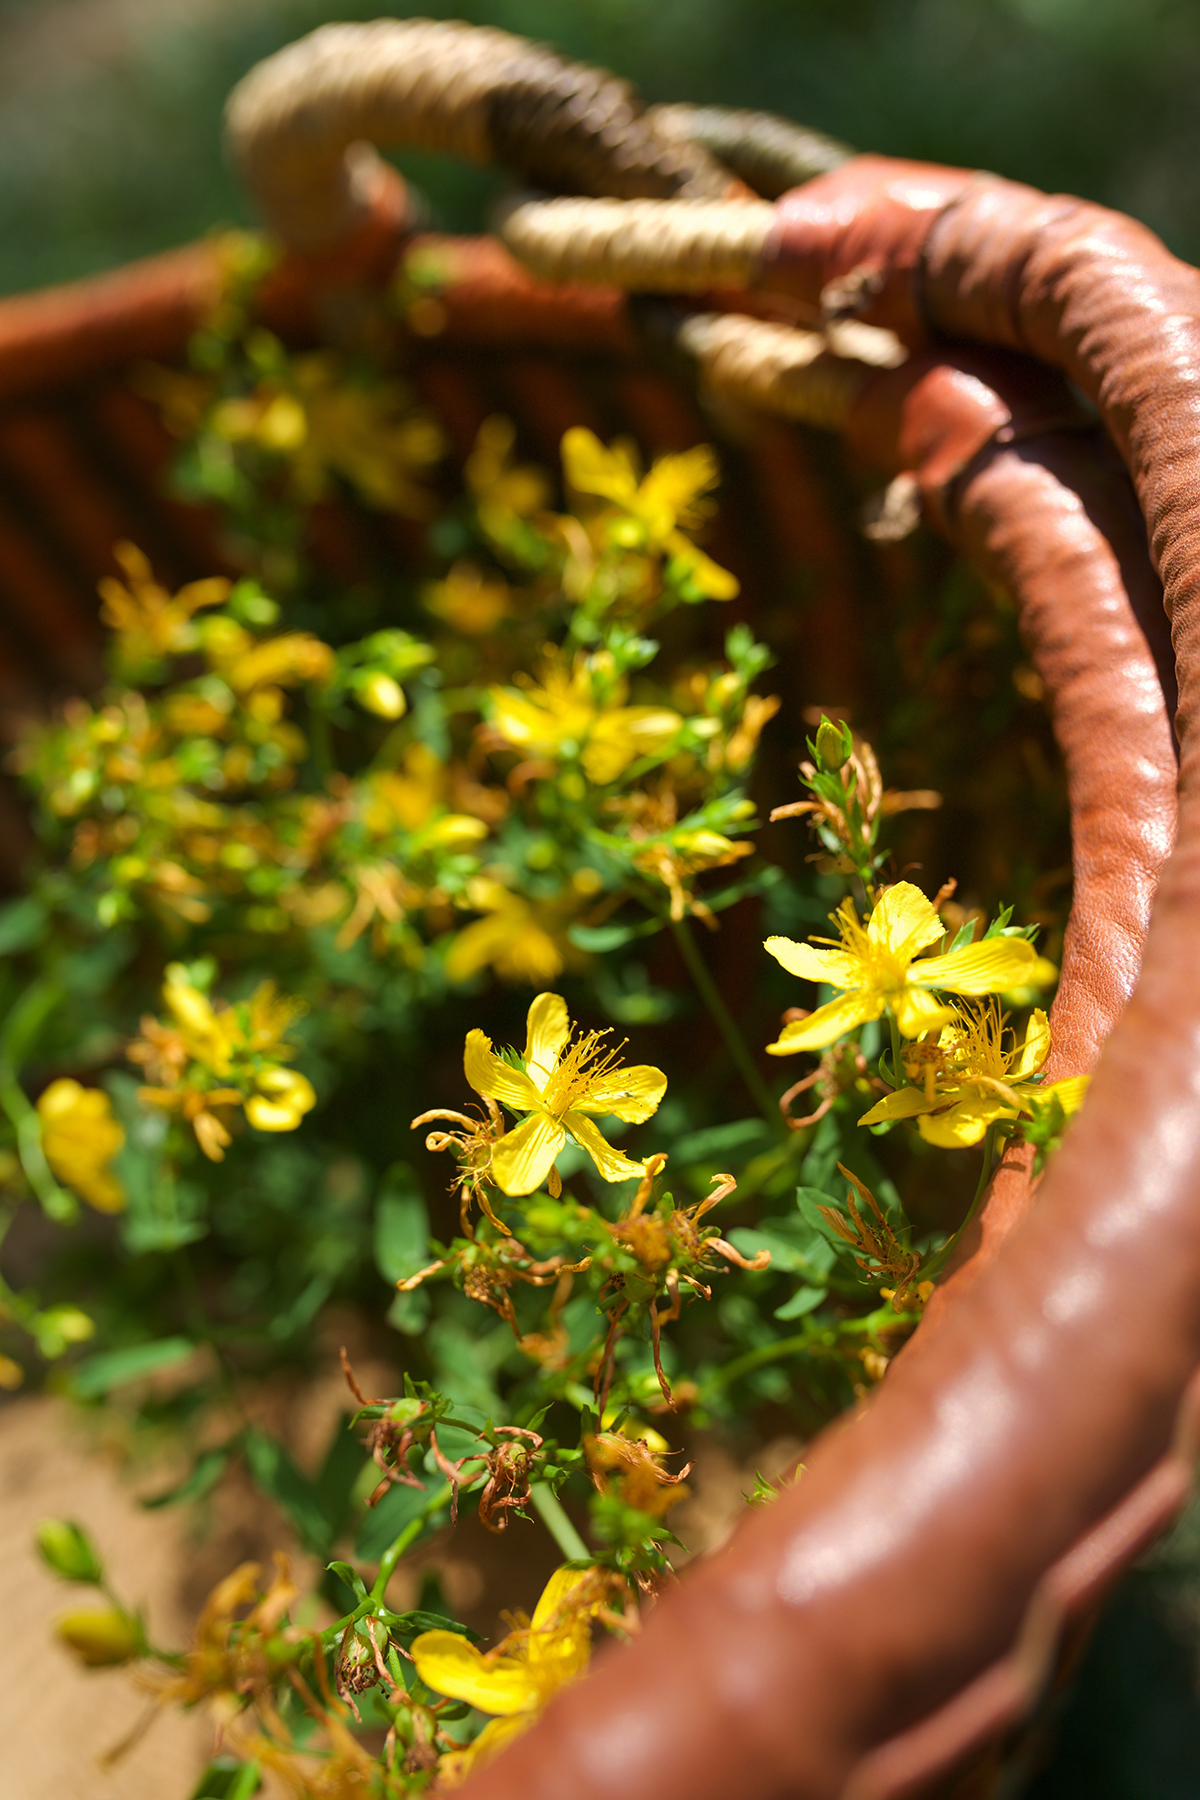 Two Basic St. John's Wort Preparations To Keep In Stock | Herbal Academy | While there are many applications for use with St. John's wort, here are two of our favorite basic St. John's wort preparations to keep on hand.